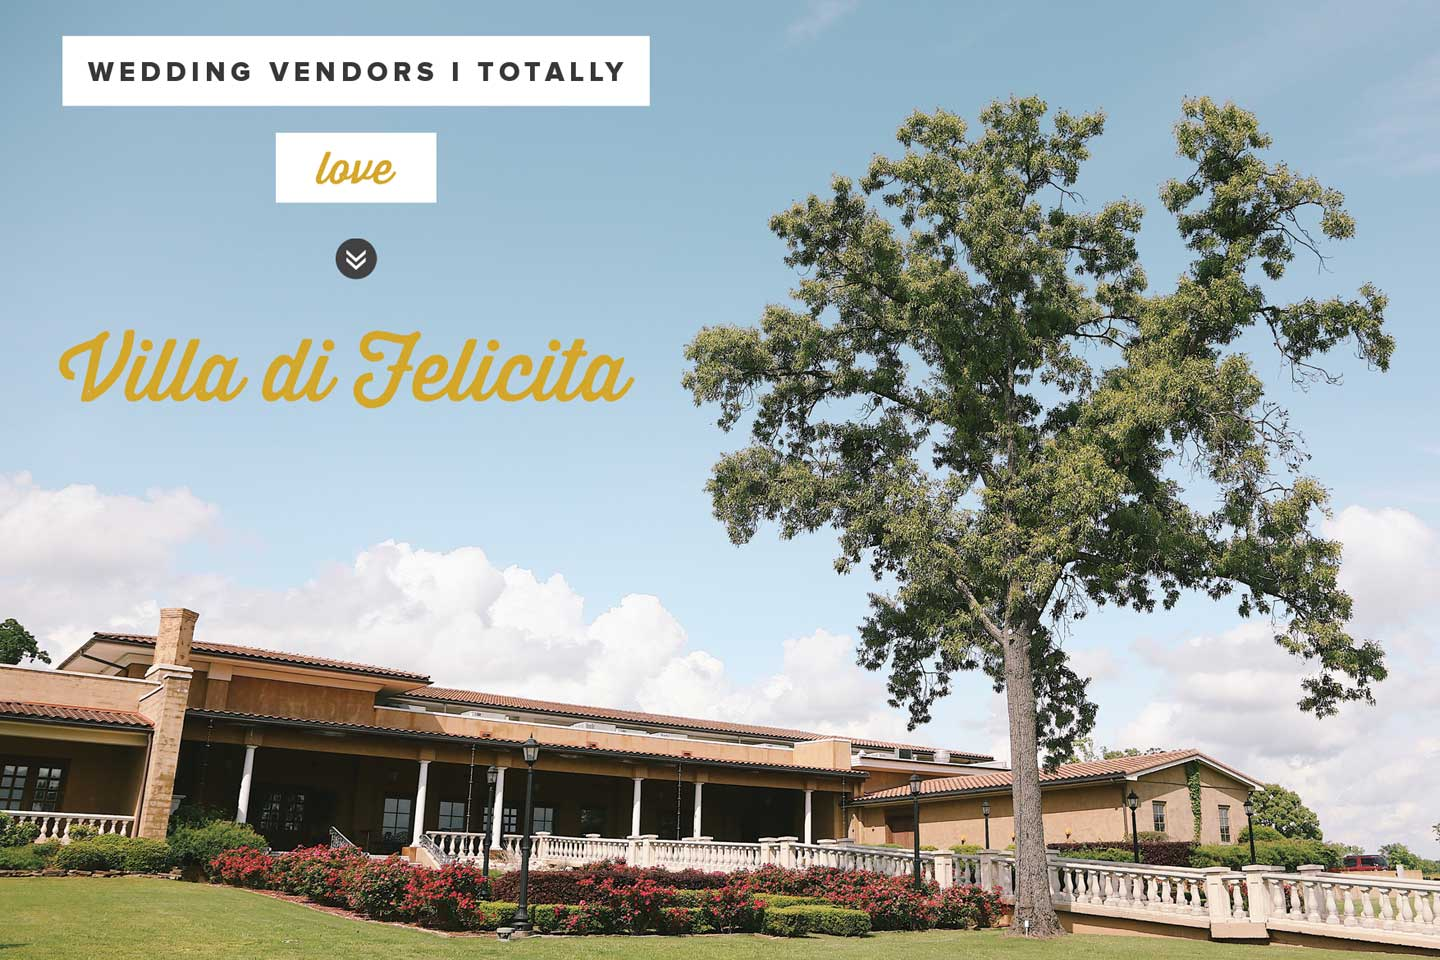 Vendor Love: Villa di Felicita